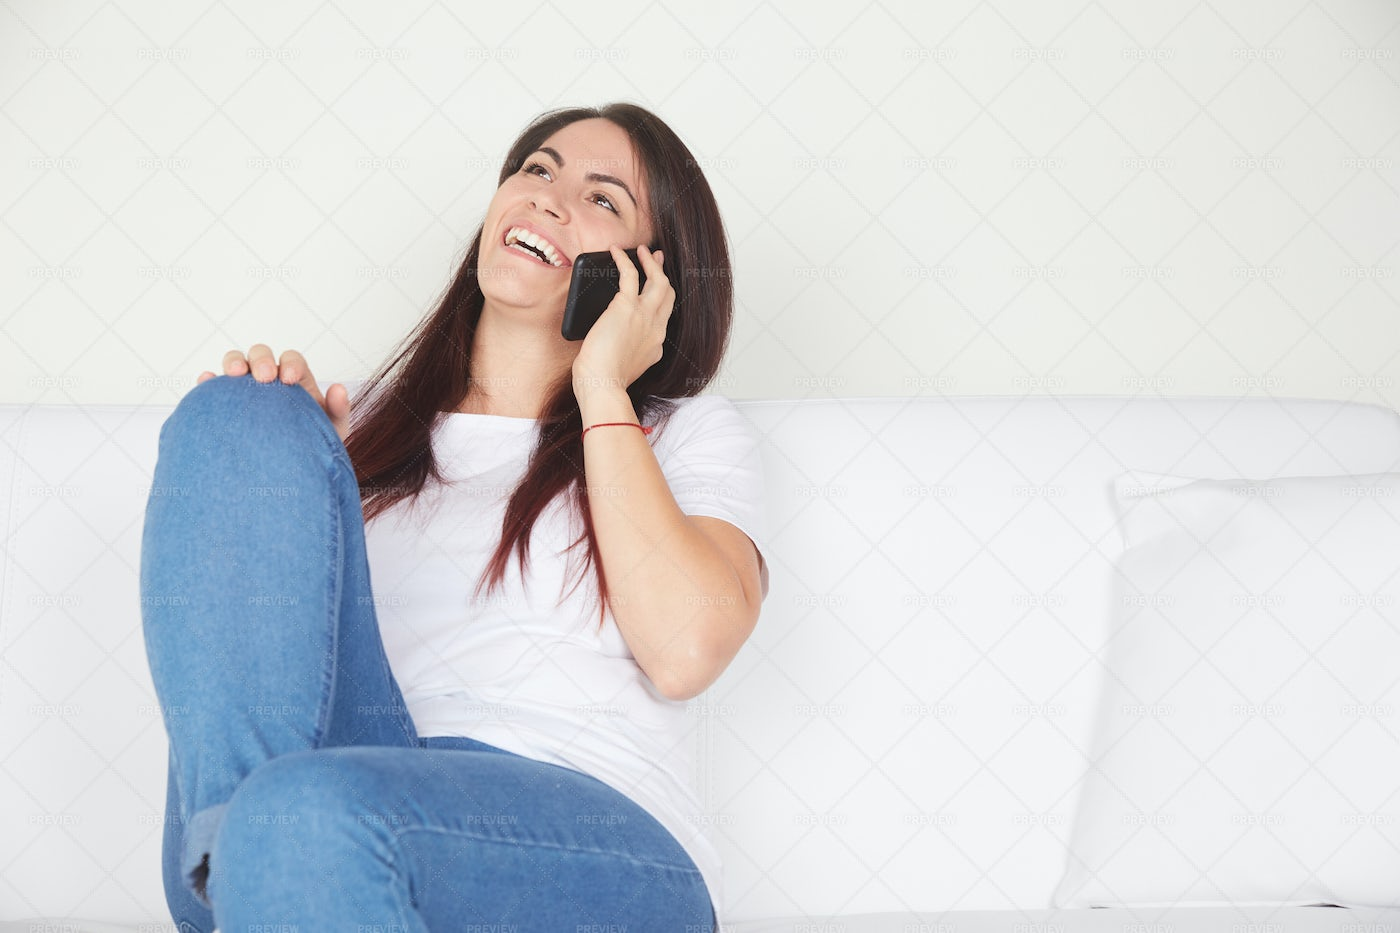 Phone Call On A Couch: Stock Photos